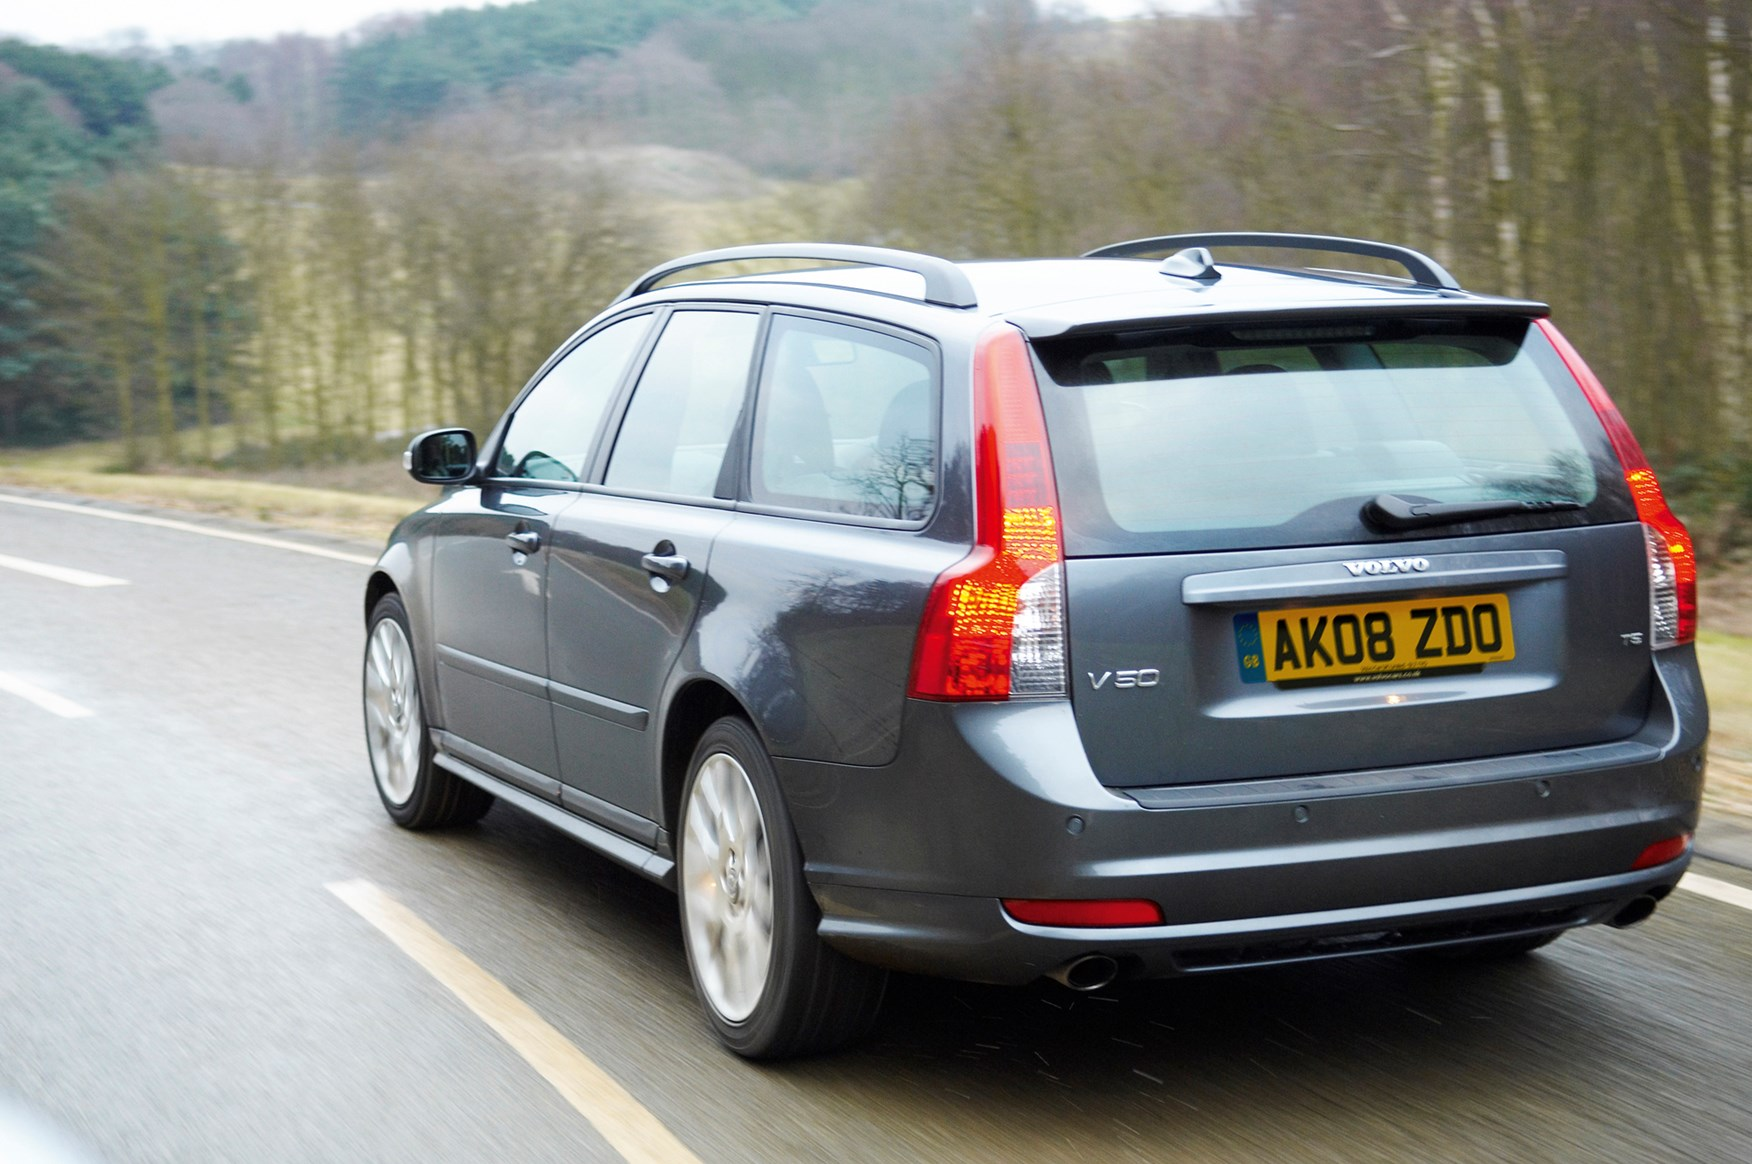 Used Volvo V50 Estate 2004 2012 Review Parkers